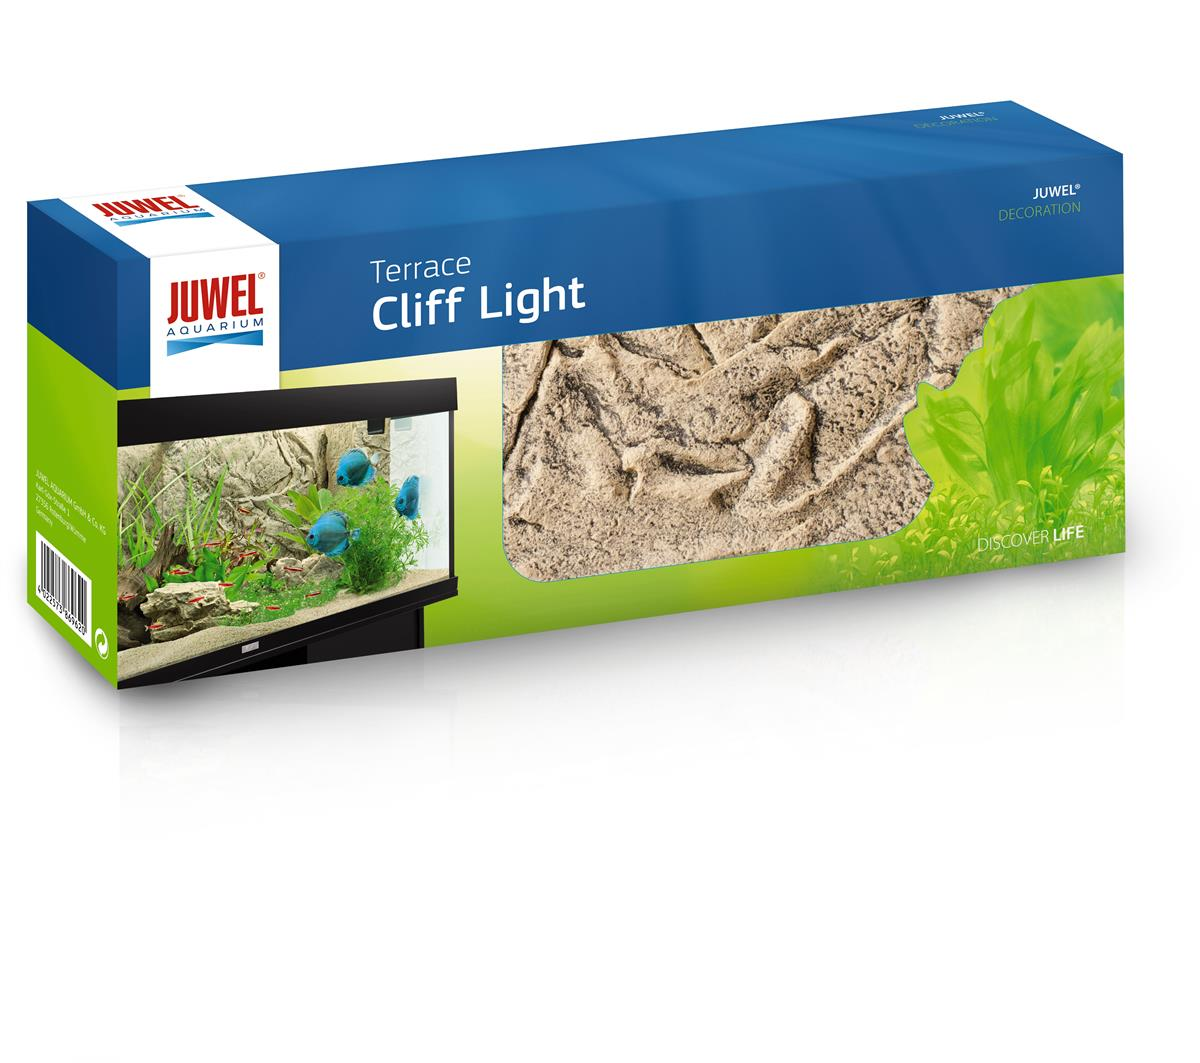 Juwel Cliff Light Terrace A